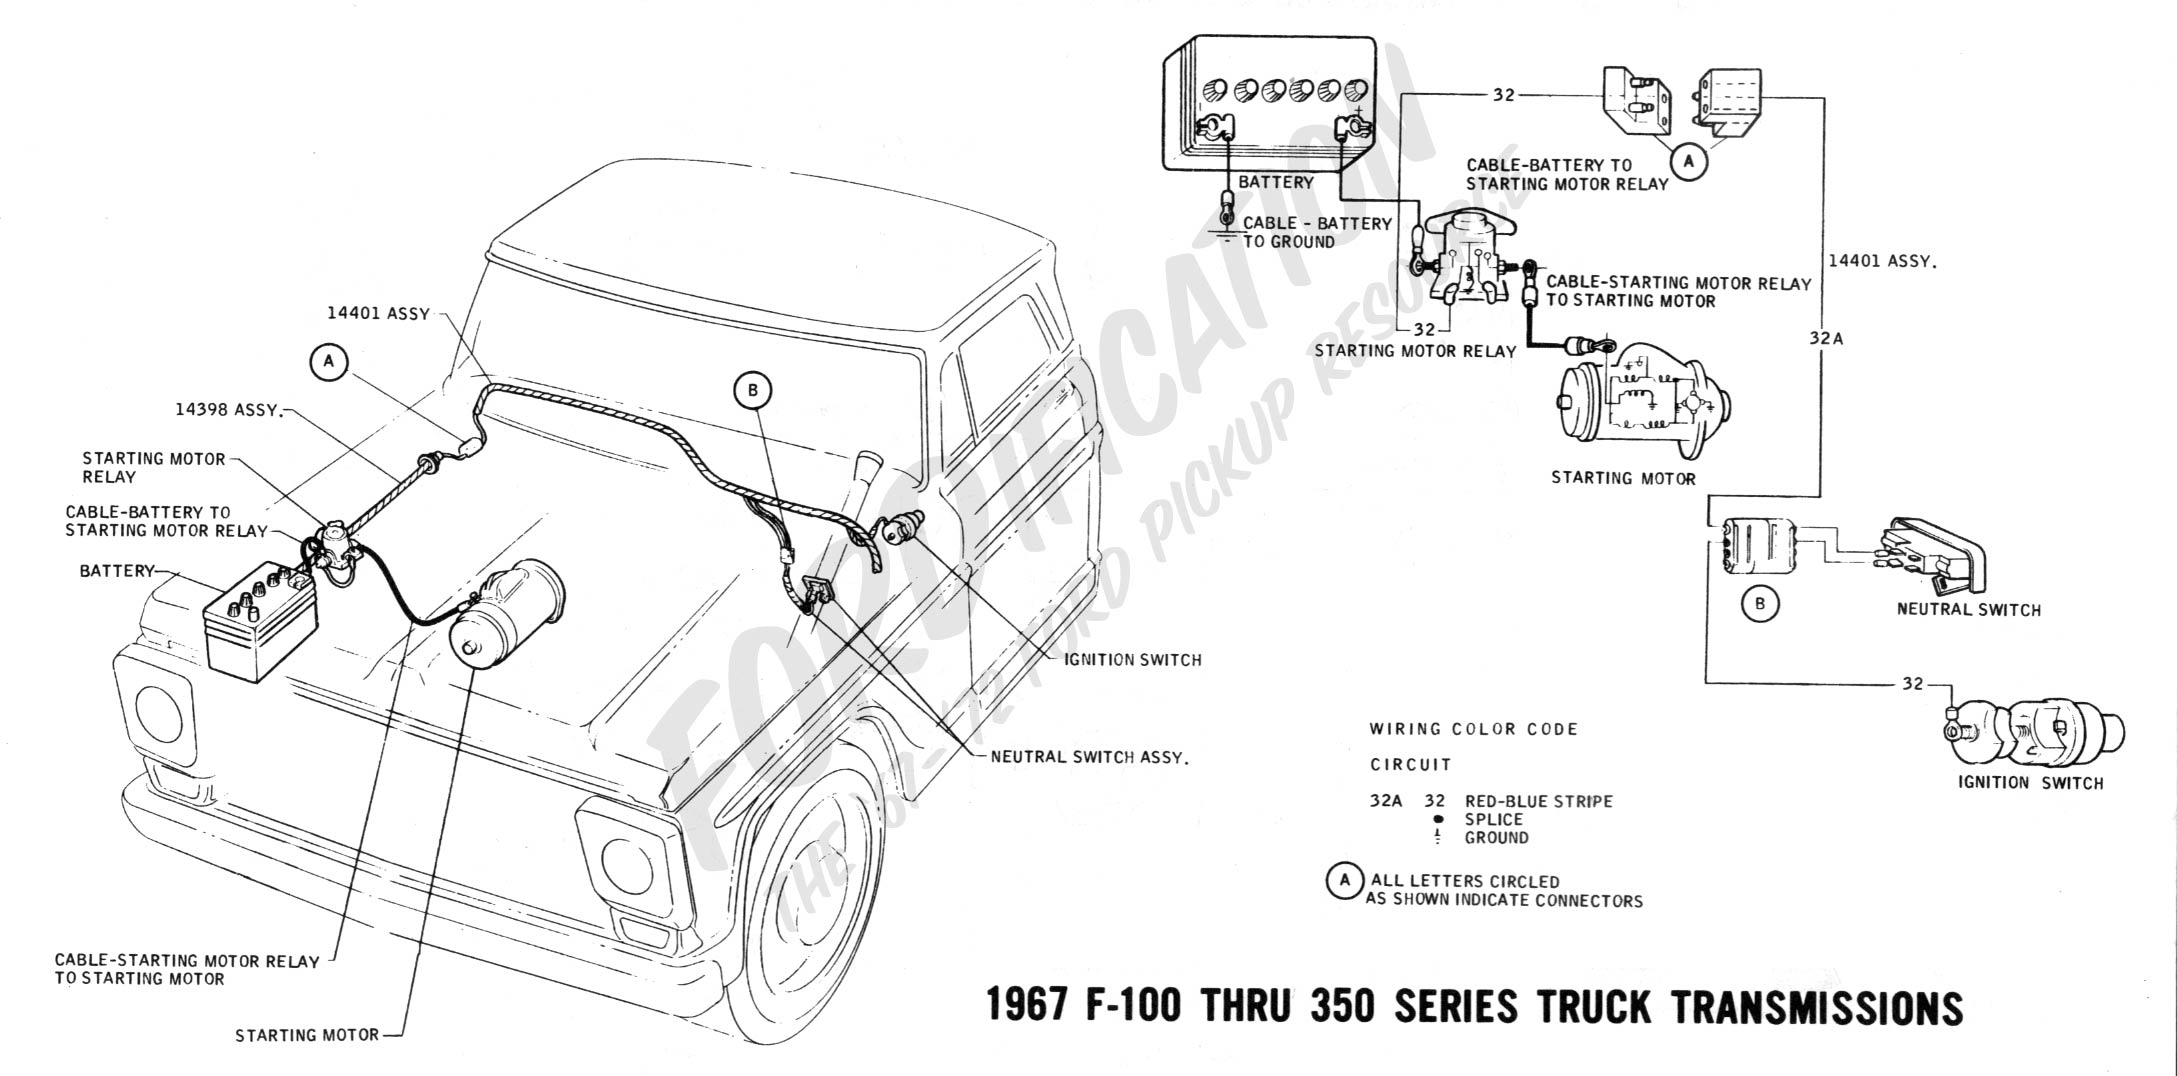 wiring 1967trucktranny ford truck technical drawings and schematics section h wiring Ford F700 Wiring Diagrams at readyjetset.co